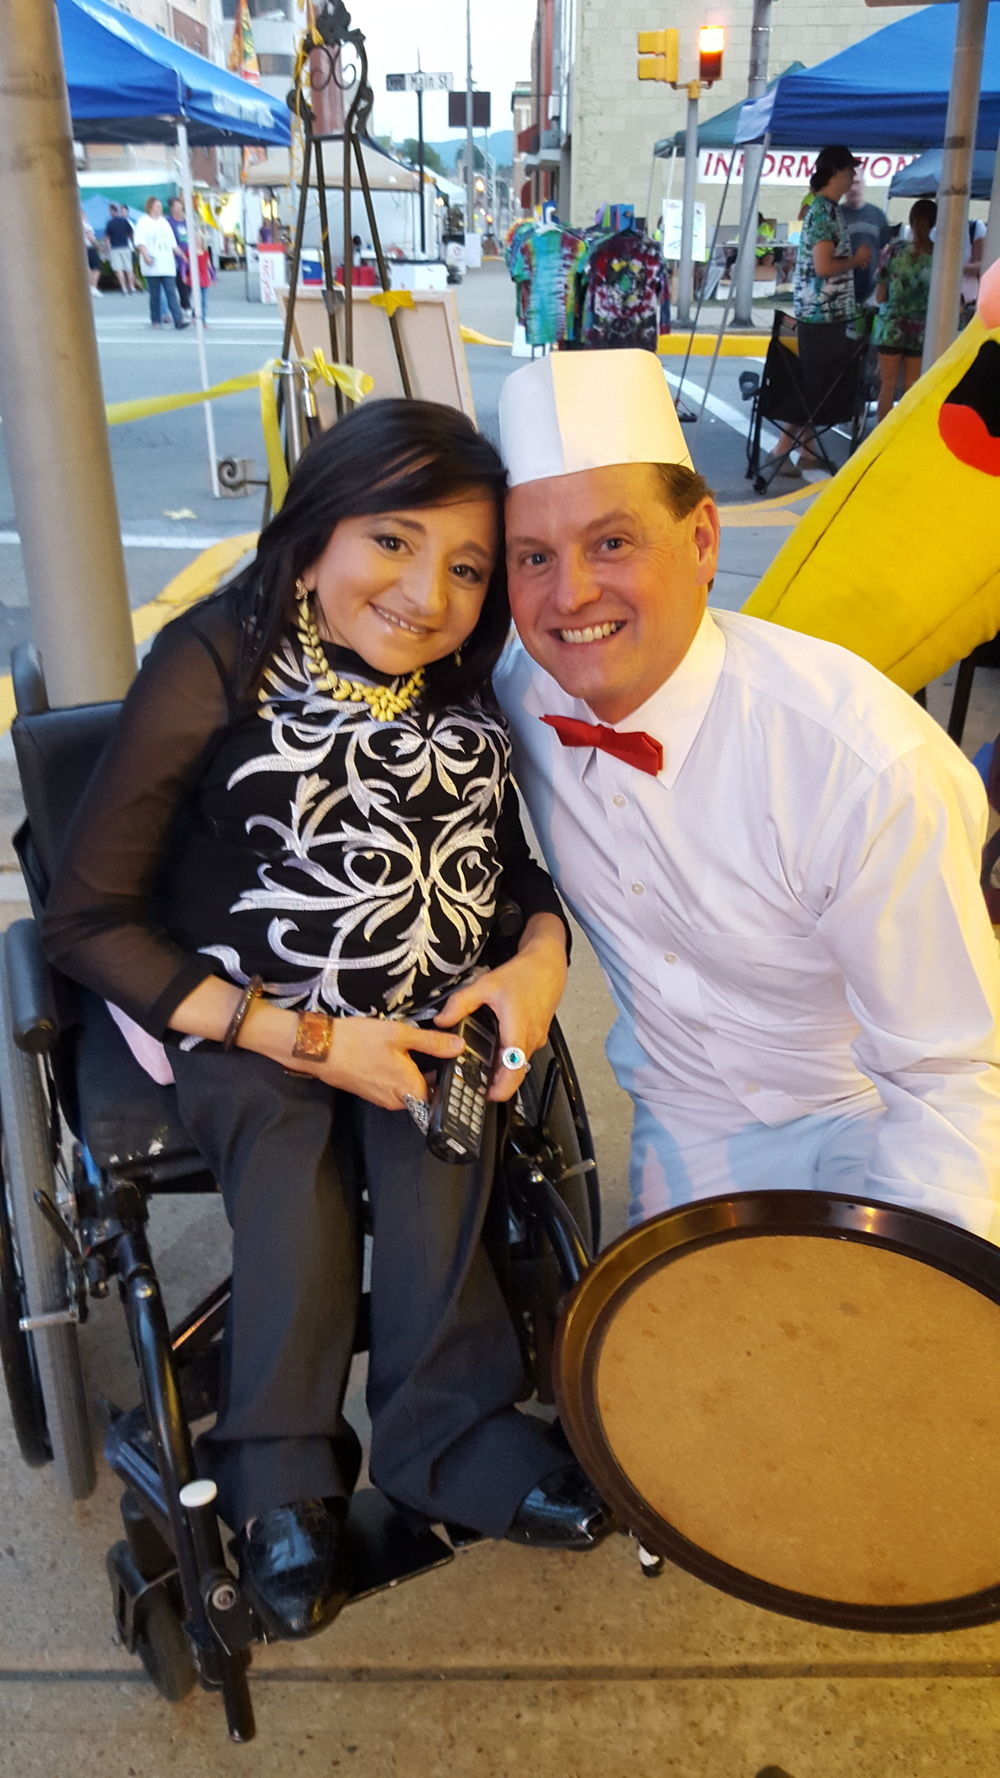 Miss Gabi and Malt Shop Marty are in charge of the Banana Split Festival's Annual Yellow-Tie Gala held every August. It's filled with food, drinks, music, laughter, fun, and more!! Get ready to dance the night away as you eat banana splits!